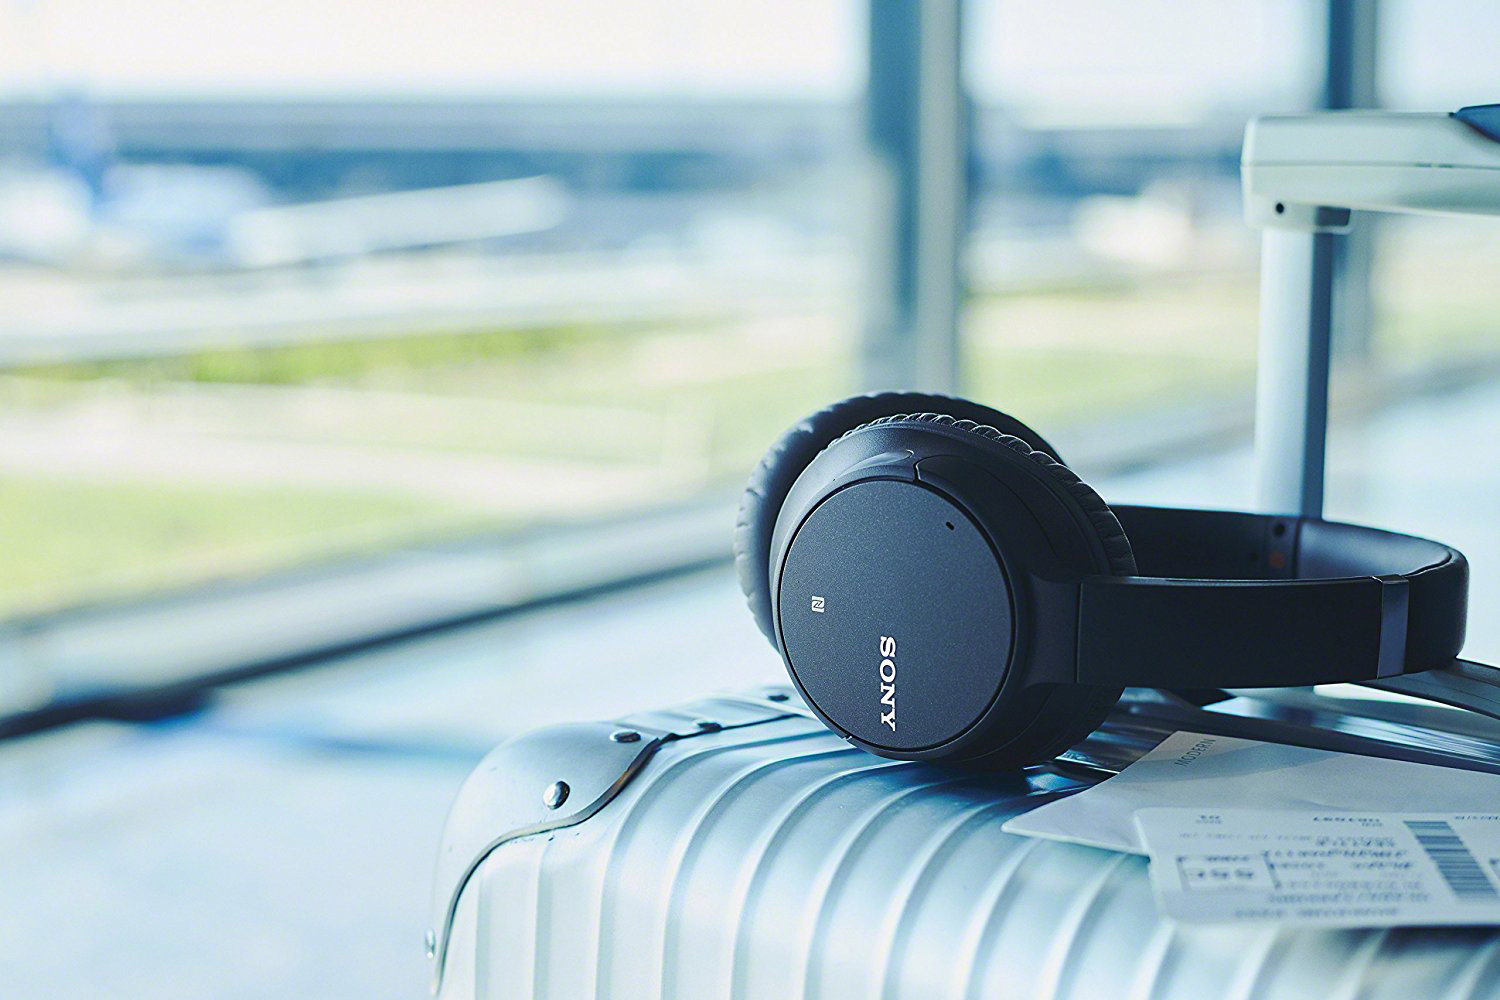 Holy cow: Sony wireless noise cancelling headphones are just $100 for Prime Day 2019